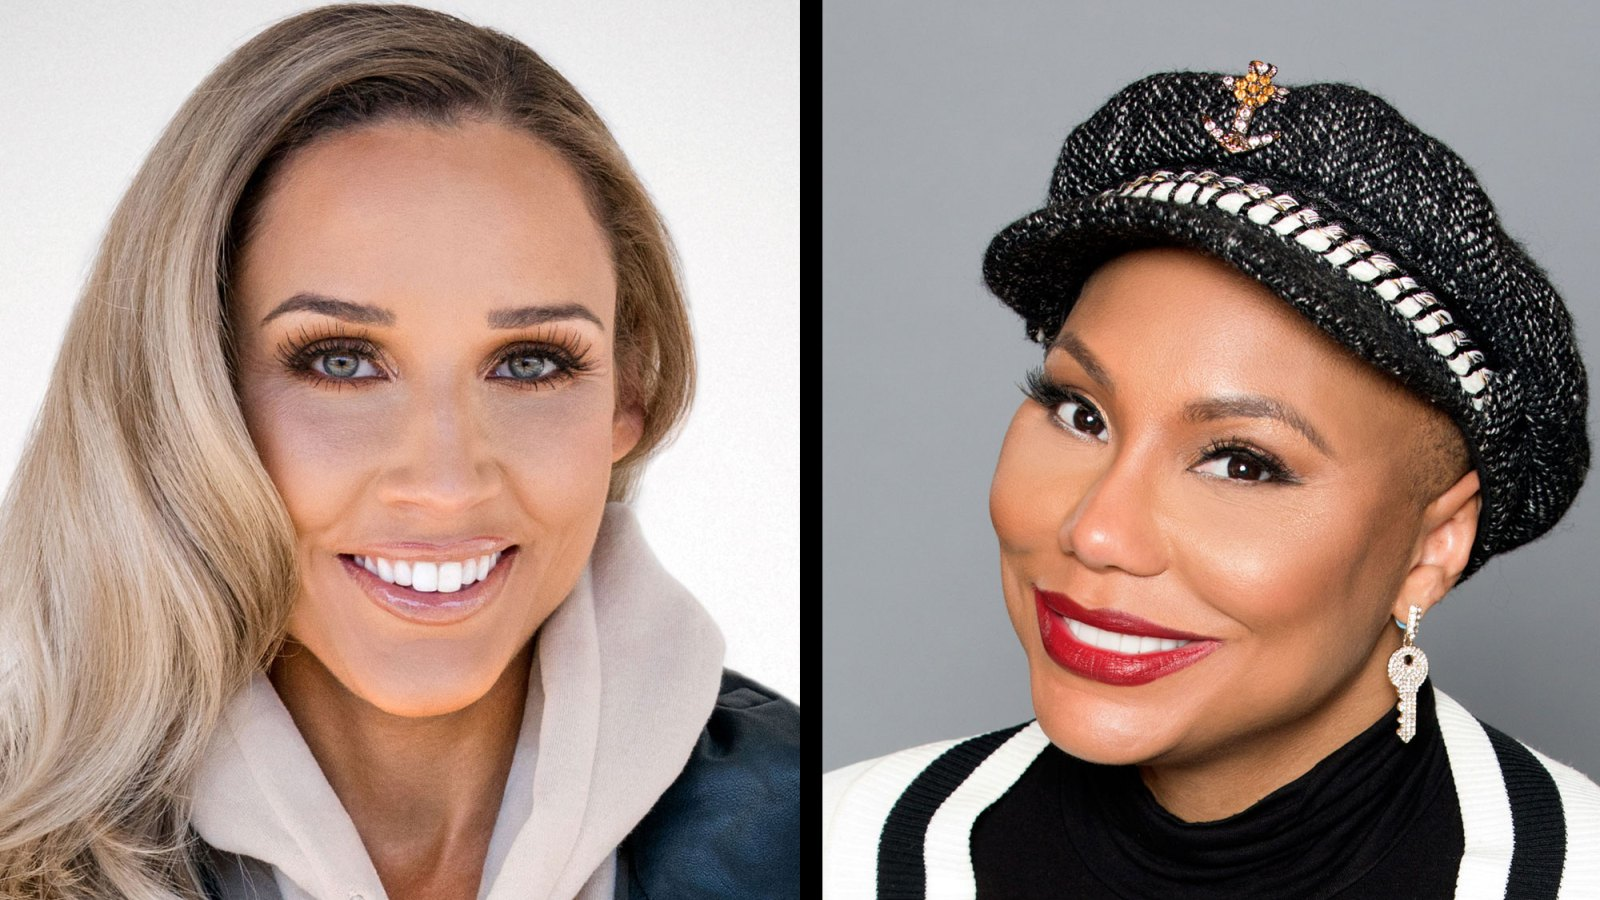 """tamar-braxton-and-lolo-jones-are-trolling-each-other-on-social-media-i-will-buy-me-a-wig-right-after-you-buy-you-a-husband"""